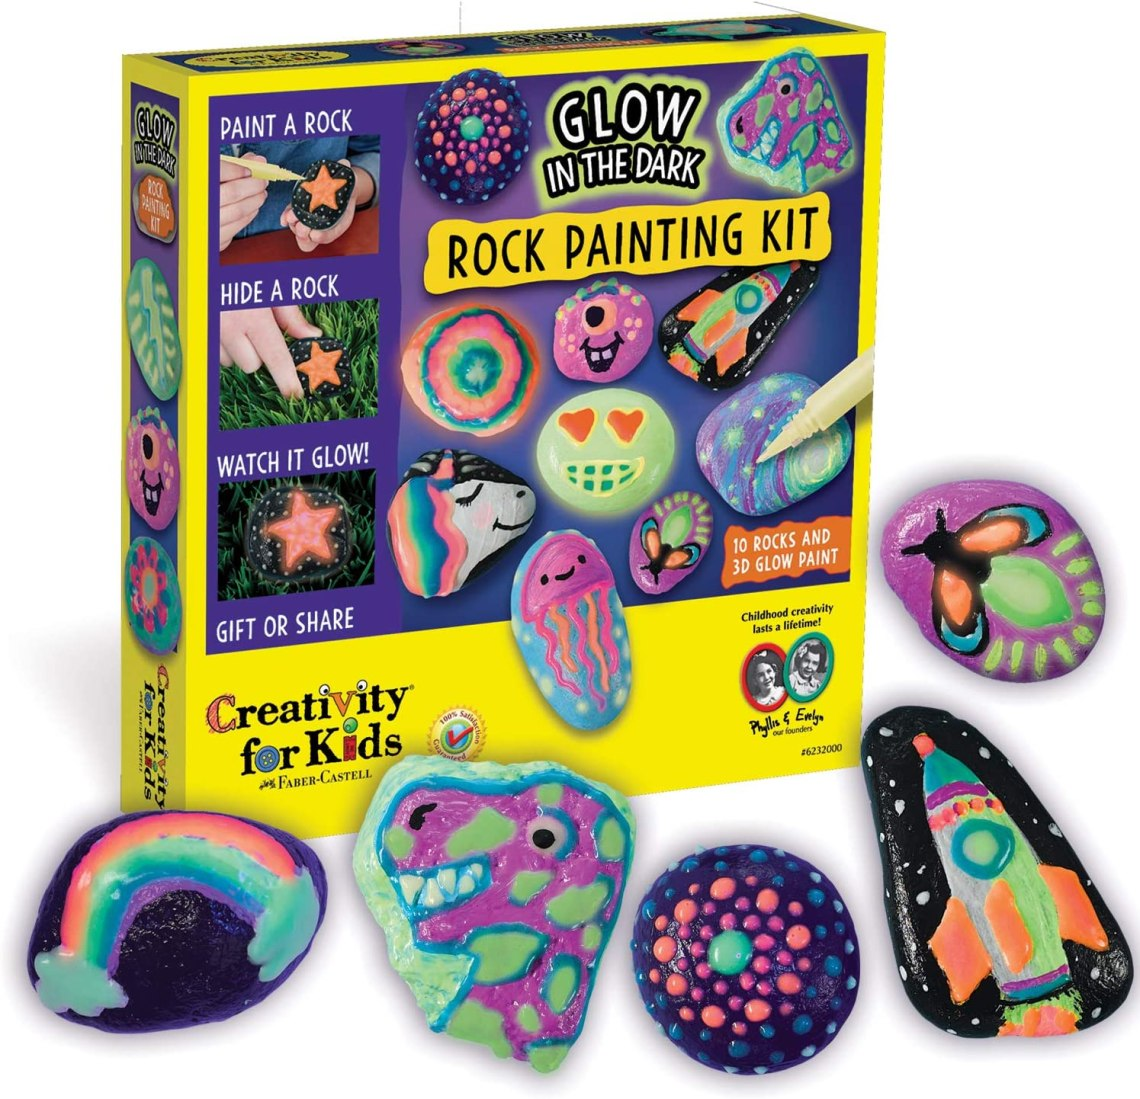 Amazon Com Creativity For Kids Glow In The Dark Rock Painting Kit Paint 10 Rocks With Water Resistant Glow Paint Crafts For Kids Toys Games